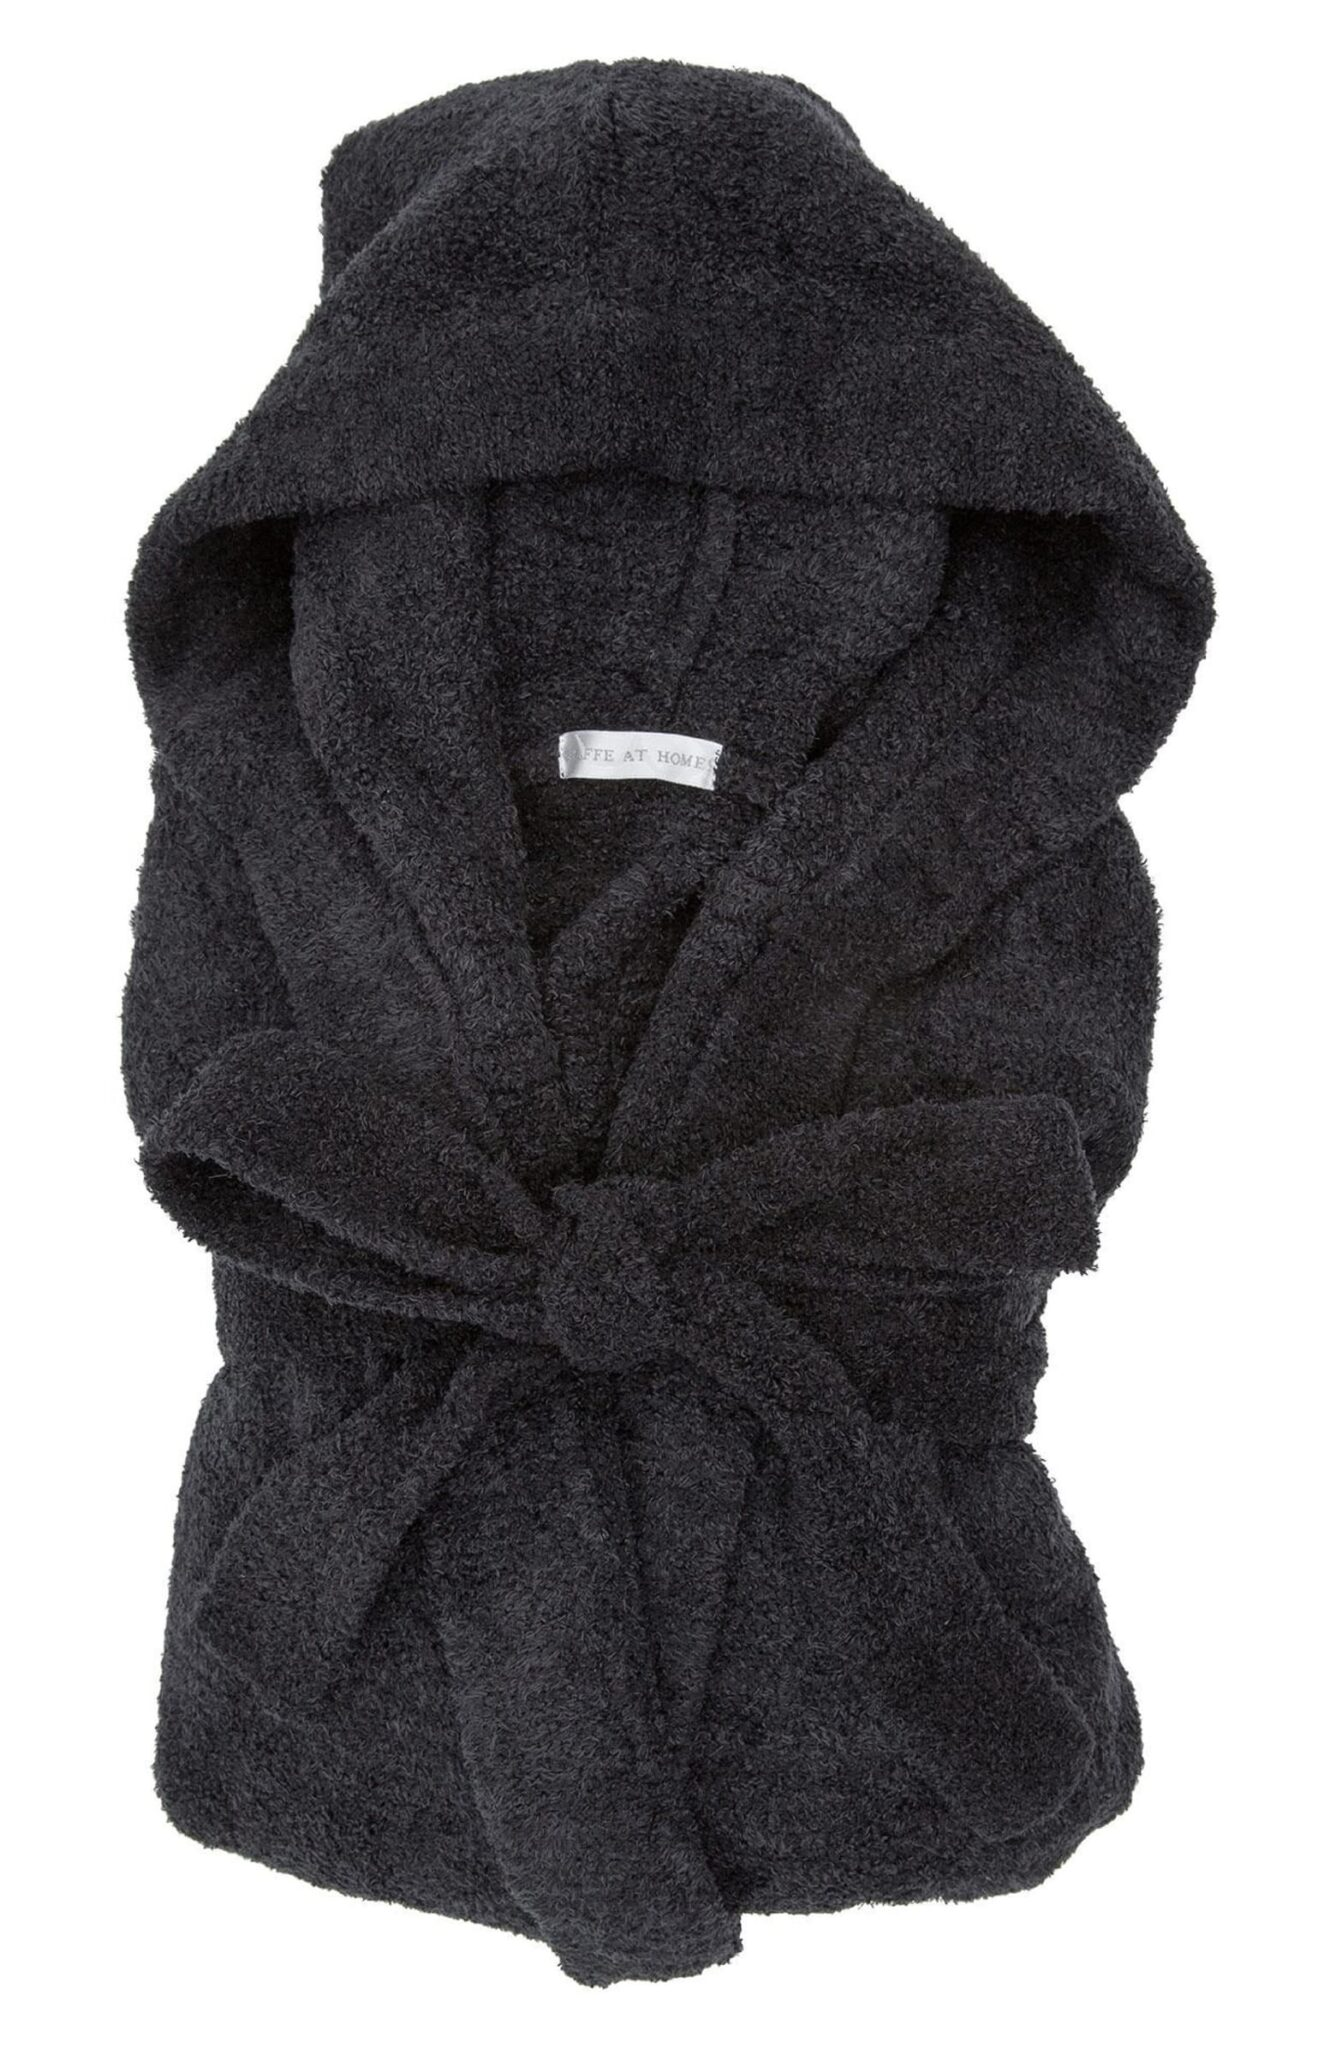 Dolce Chenille Hooded Robe $167.00